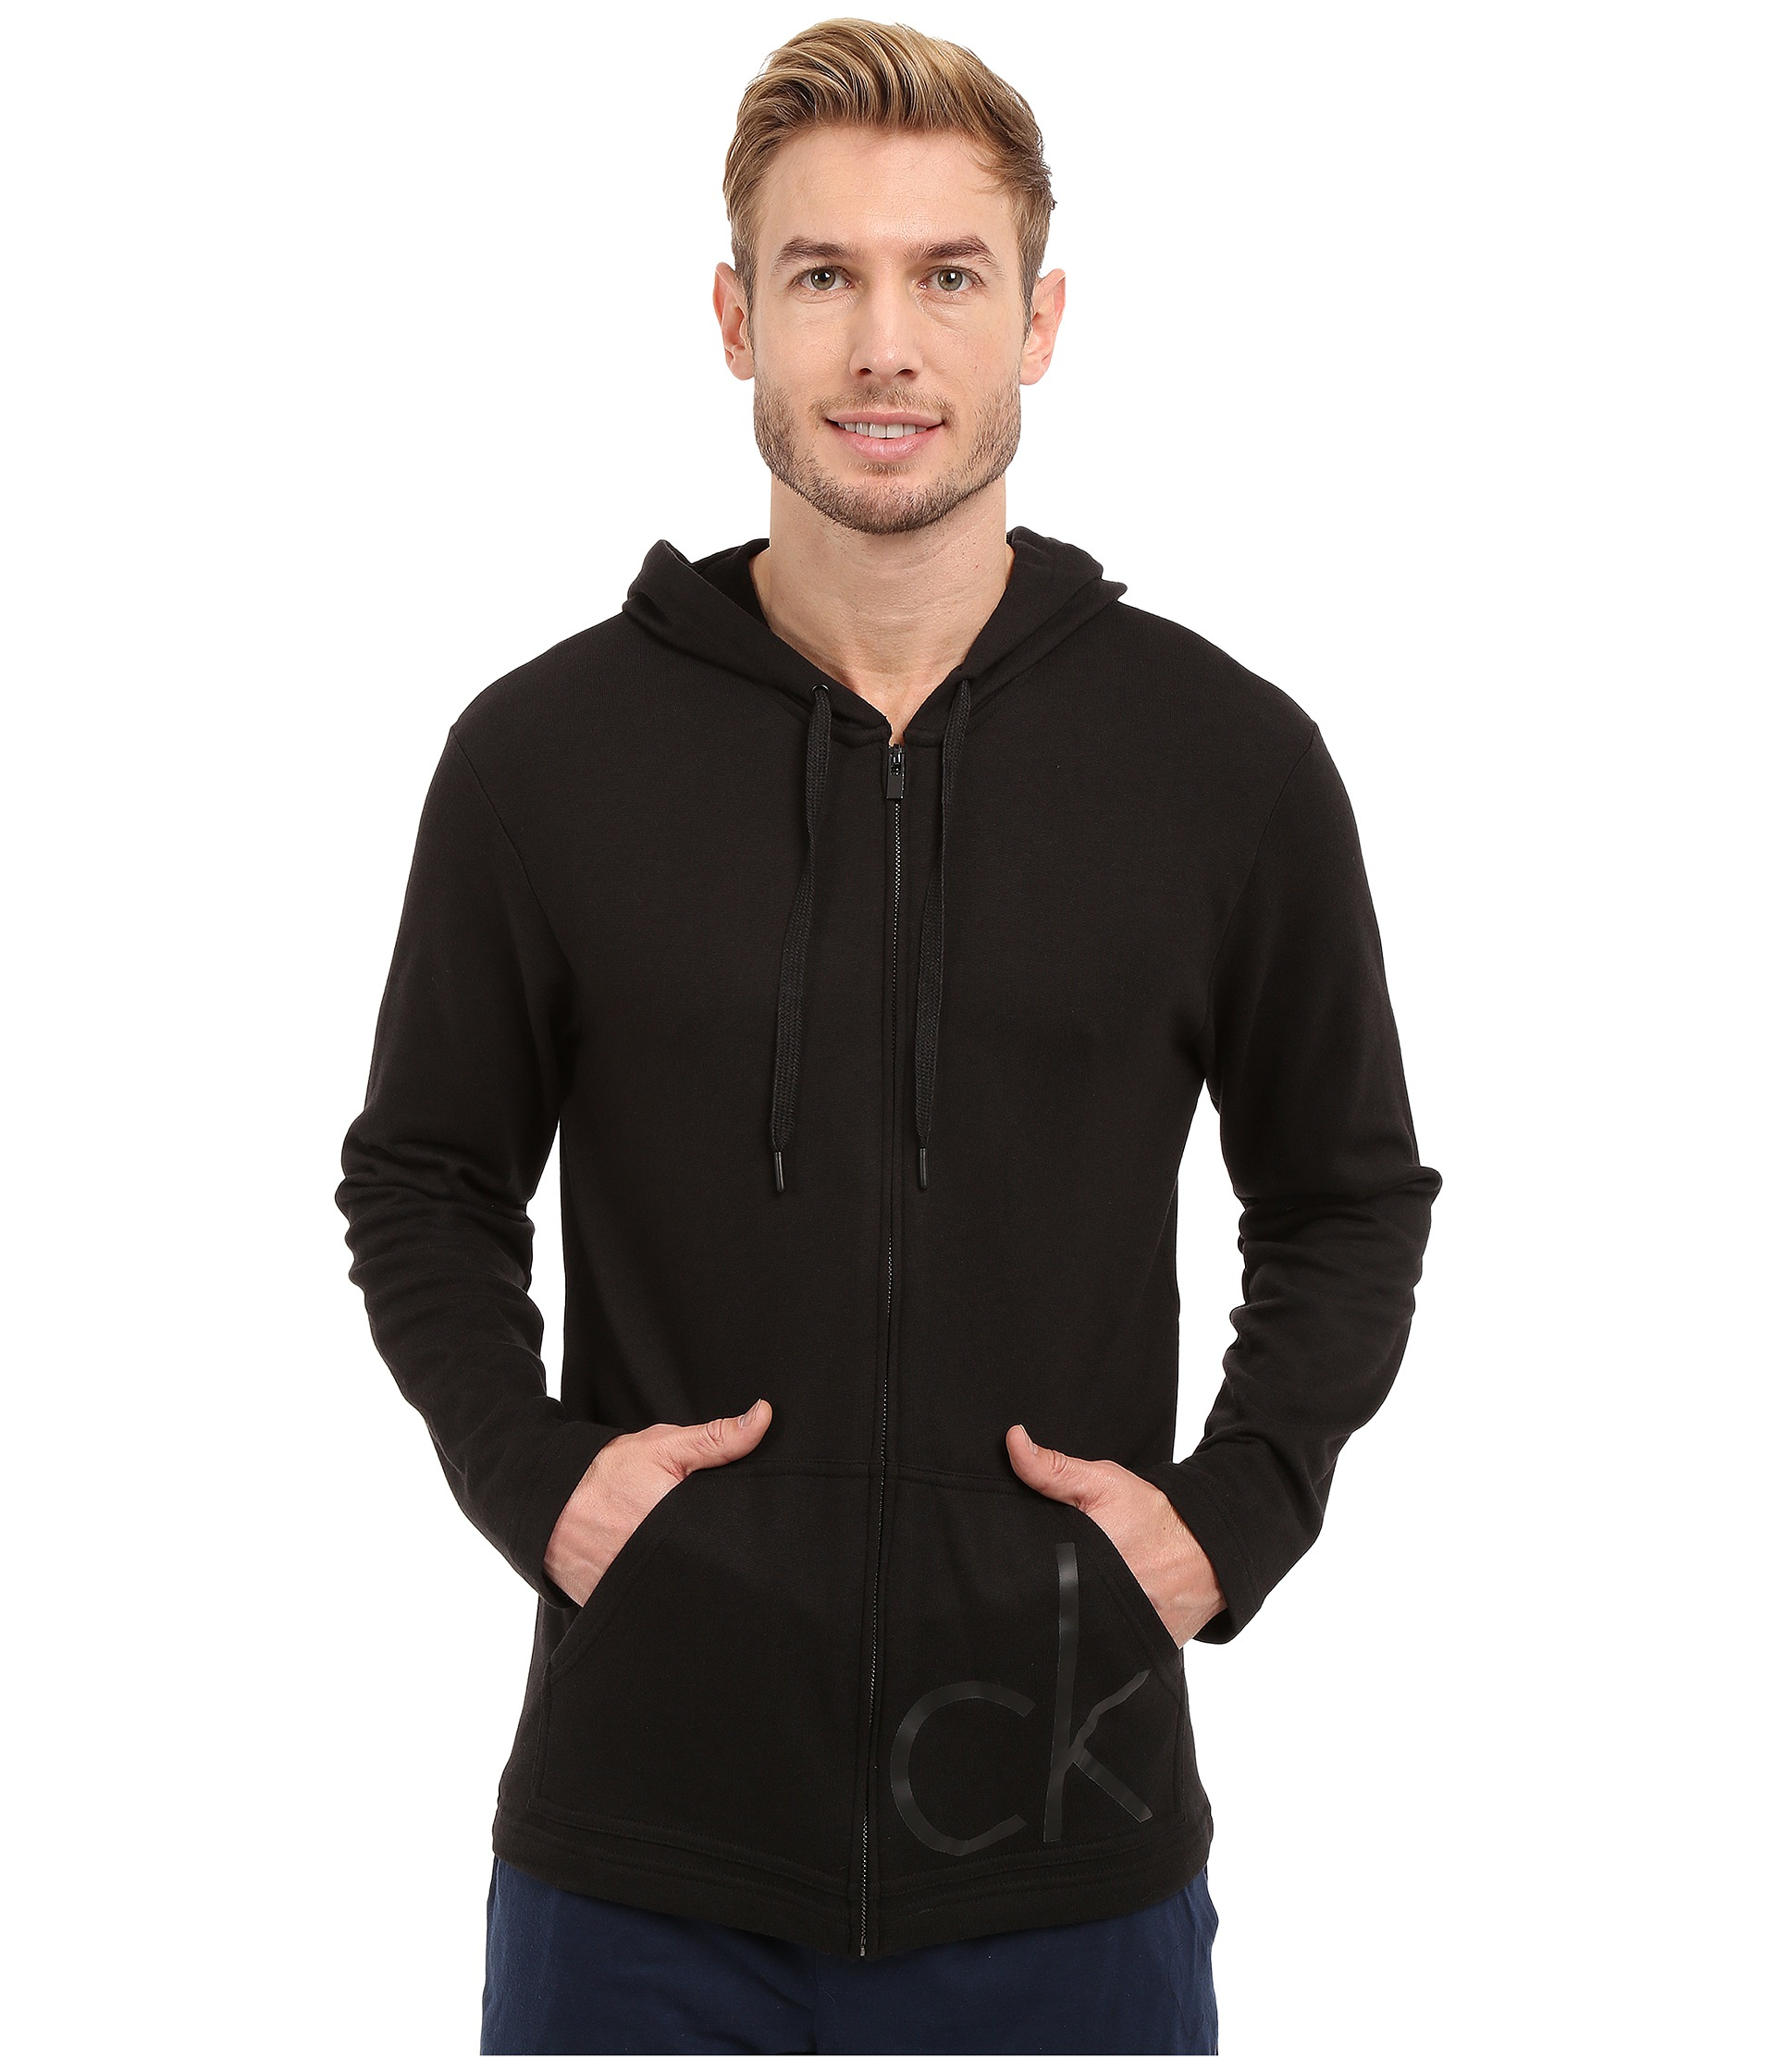 calvin klein ck one french terry full zip hoodie in black for men lyst. Black Bedroom Furniture Sets. Home Design Ideas